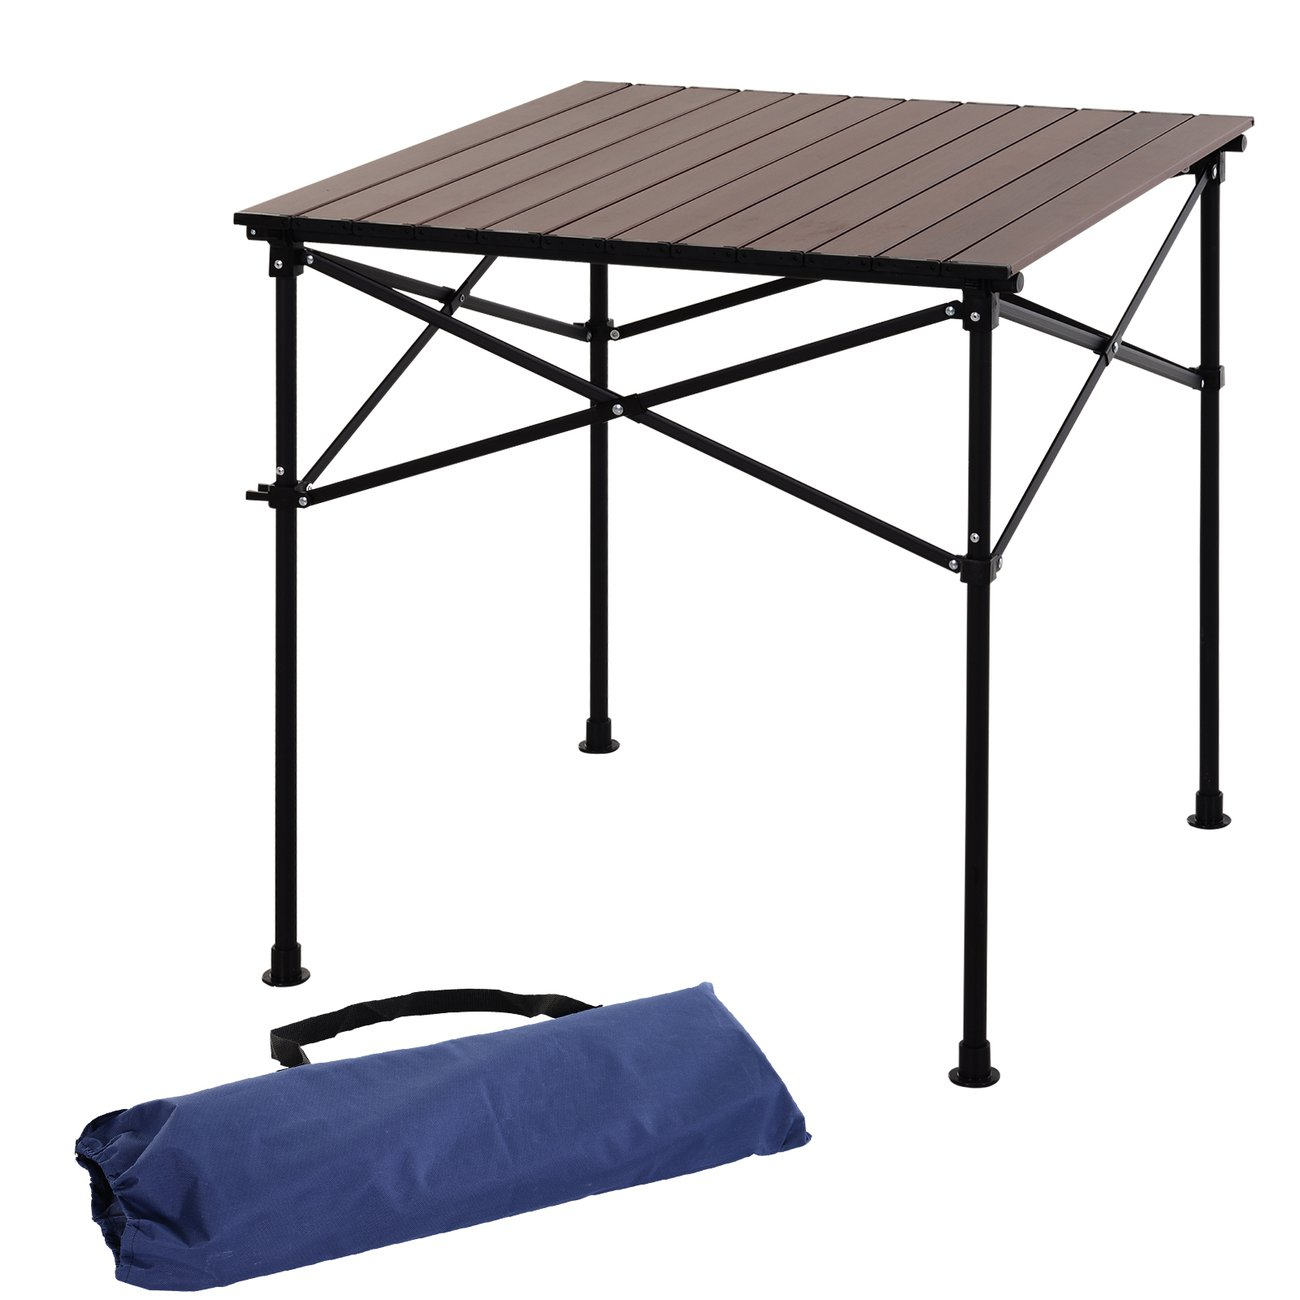 Outsunny Table Pliante En Aluminium Table De Camping Table De Jardin 4  Personnes + Sac De Transport dedans Table Exterieur 4 Personnes